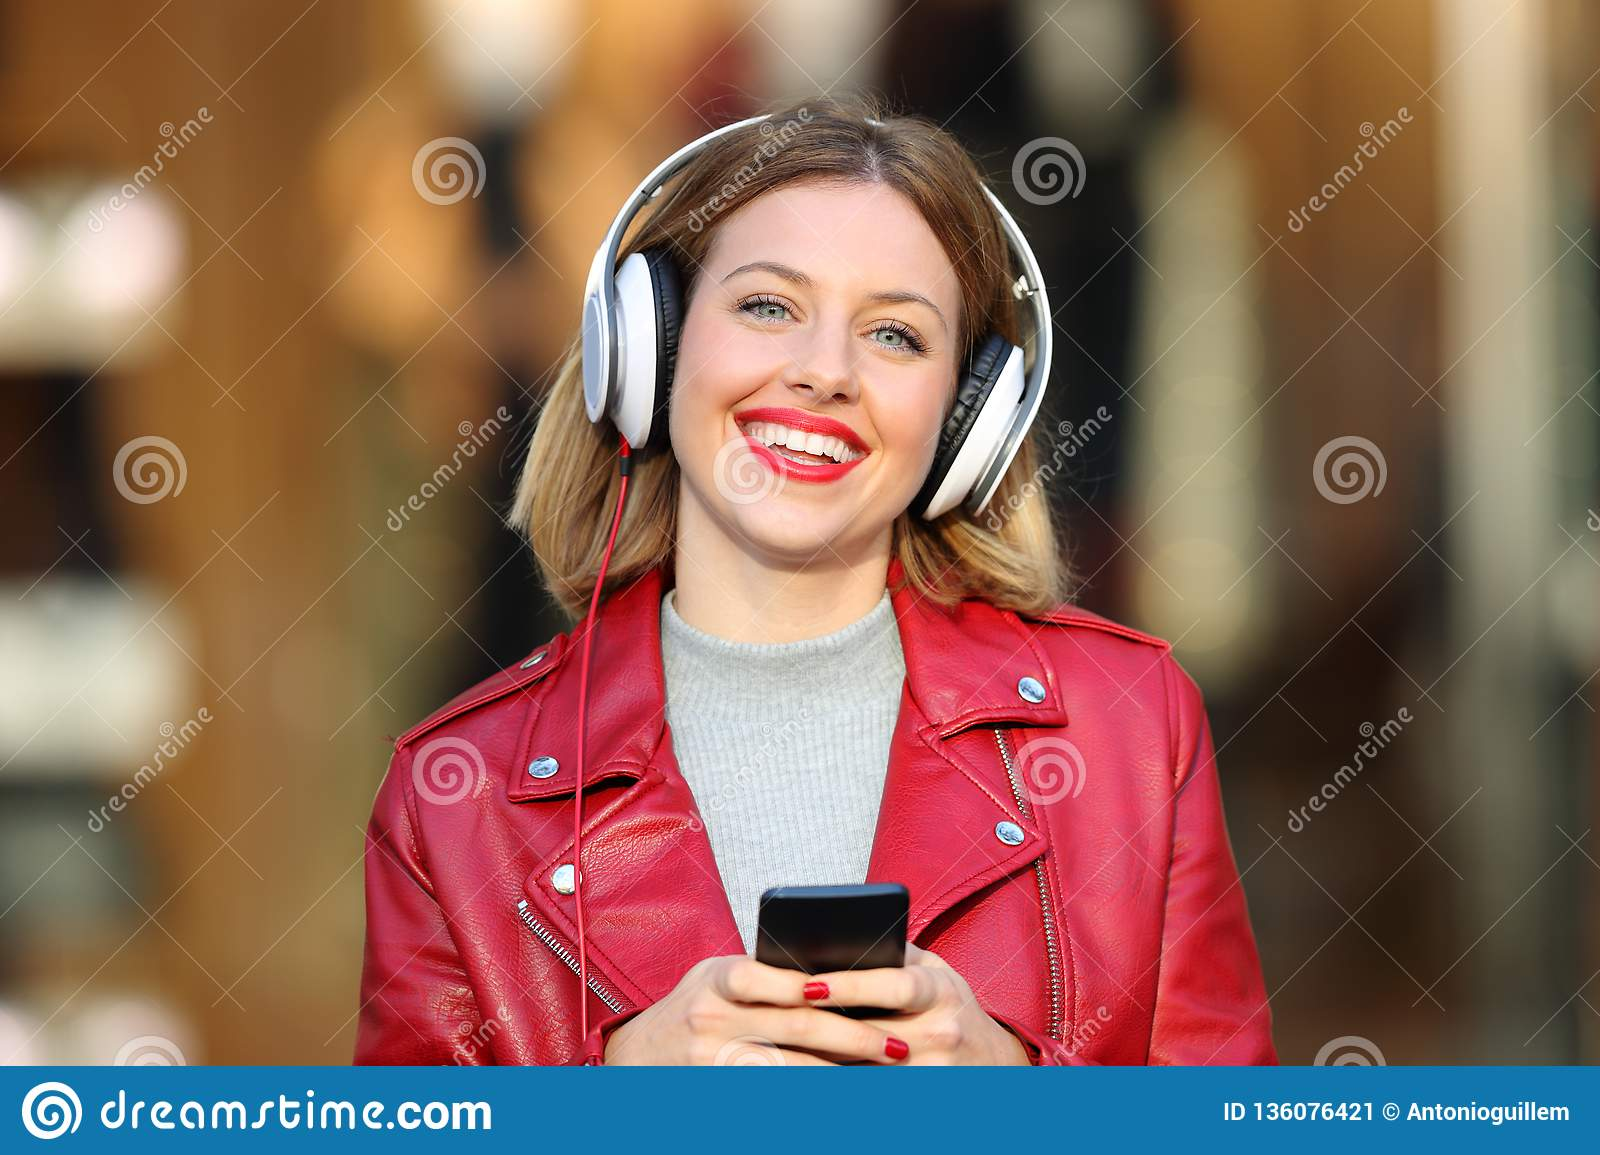 Fashion girl listening to music from phone looking at you